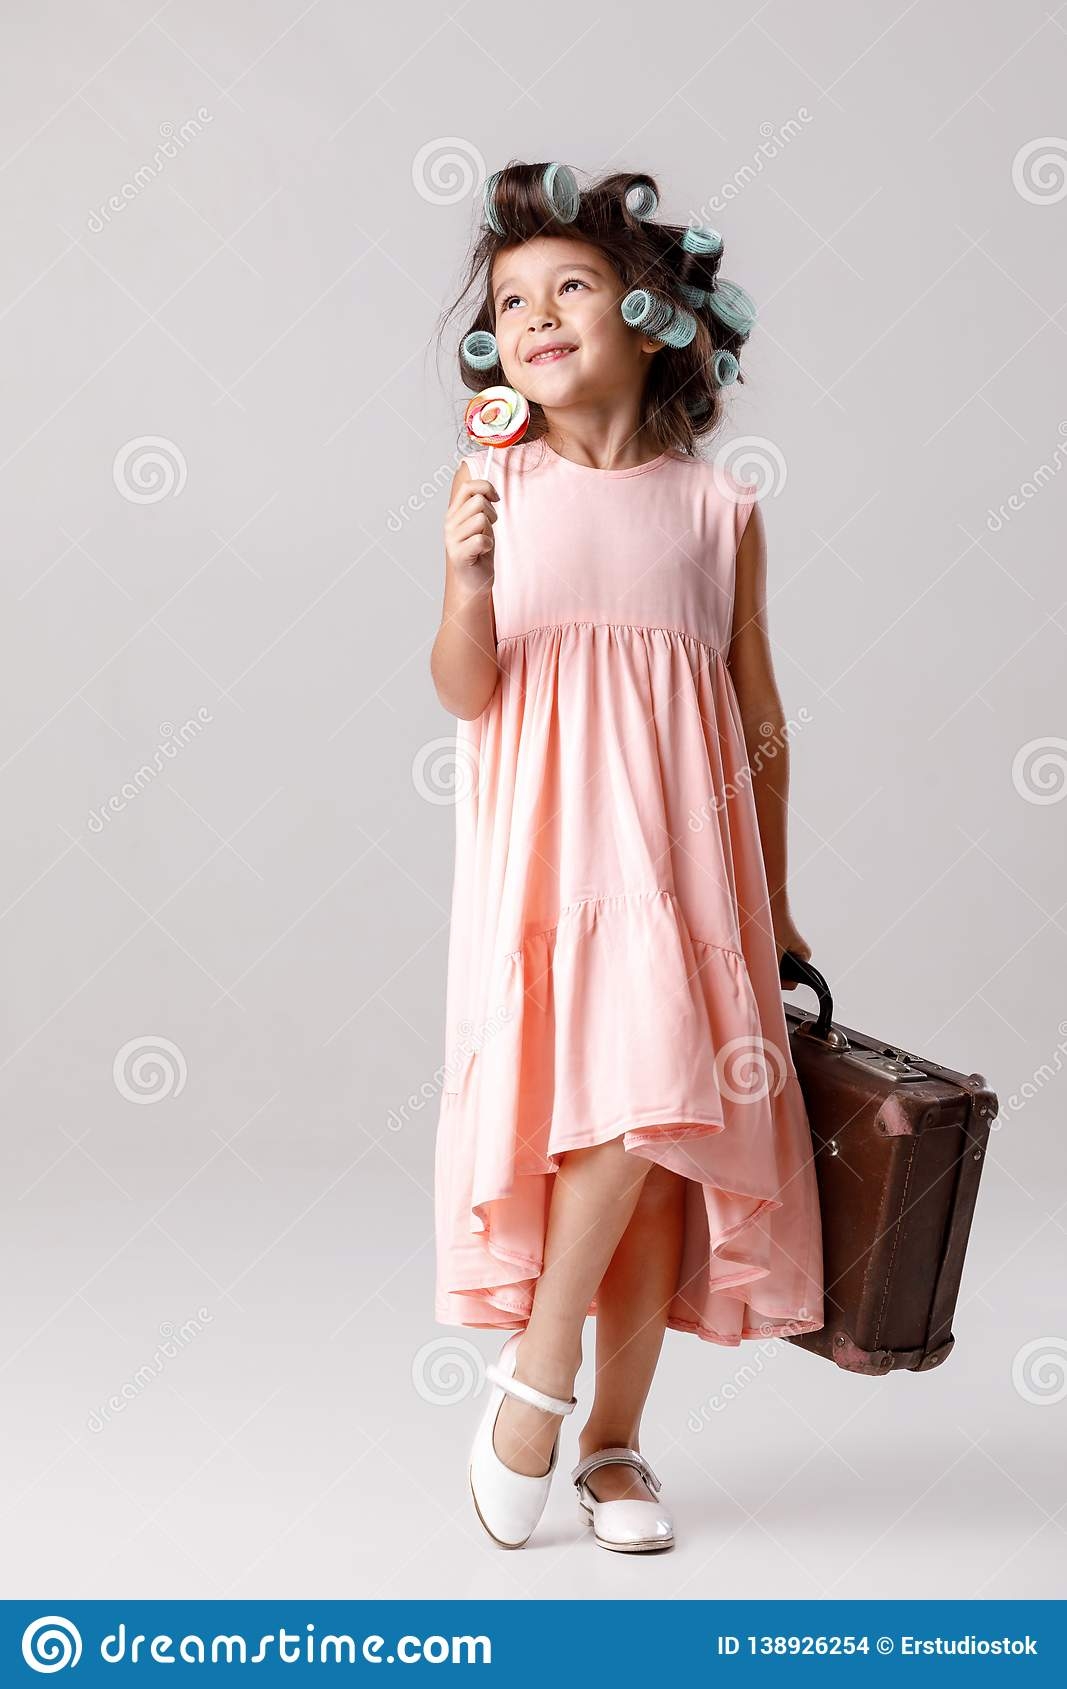 2e6102c85 Funny Little Girl In Pink Dress And Hair Curlers Holding Lollipop ...